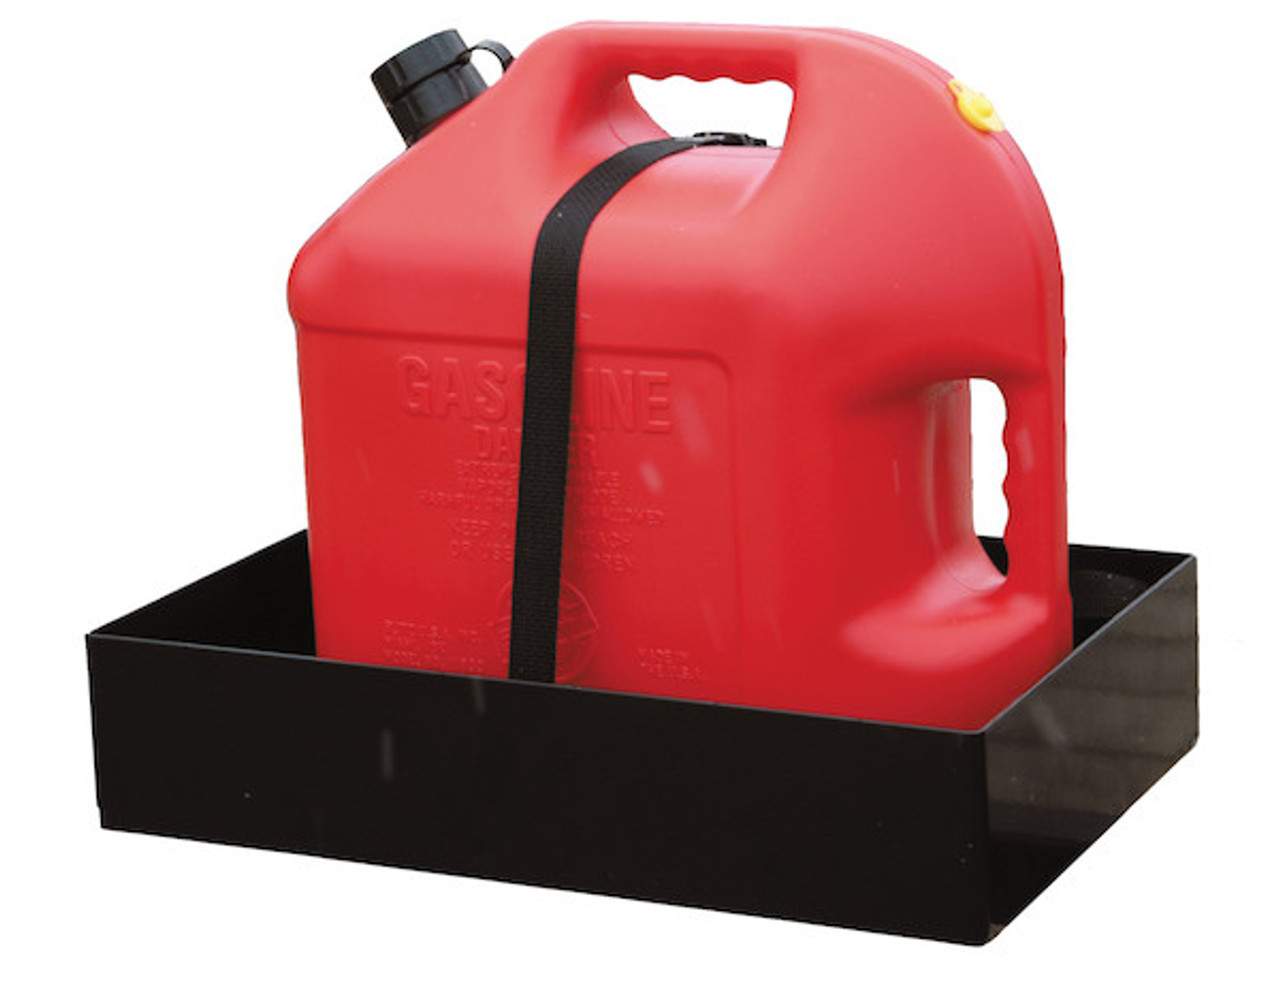 Buyers LT30 Gas Container Rack For Landscaping Trailers, Garages, Sheds, Construction Vehicles Picture # 1